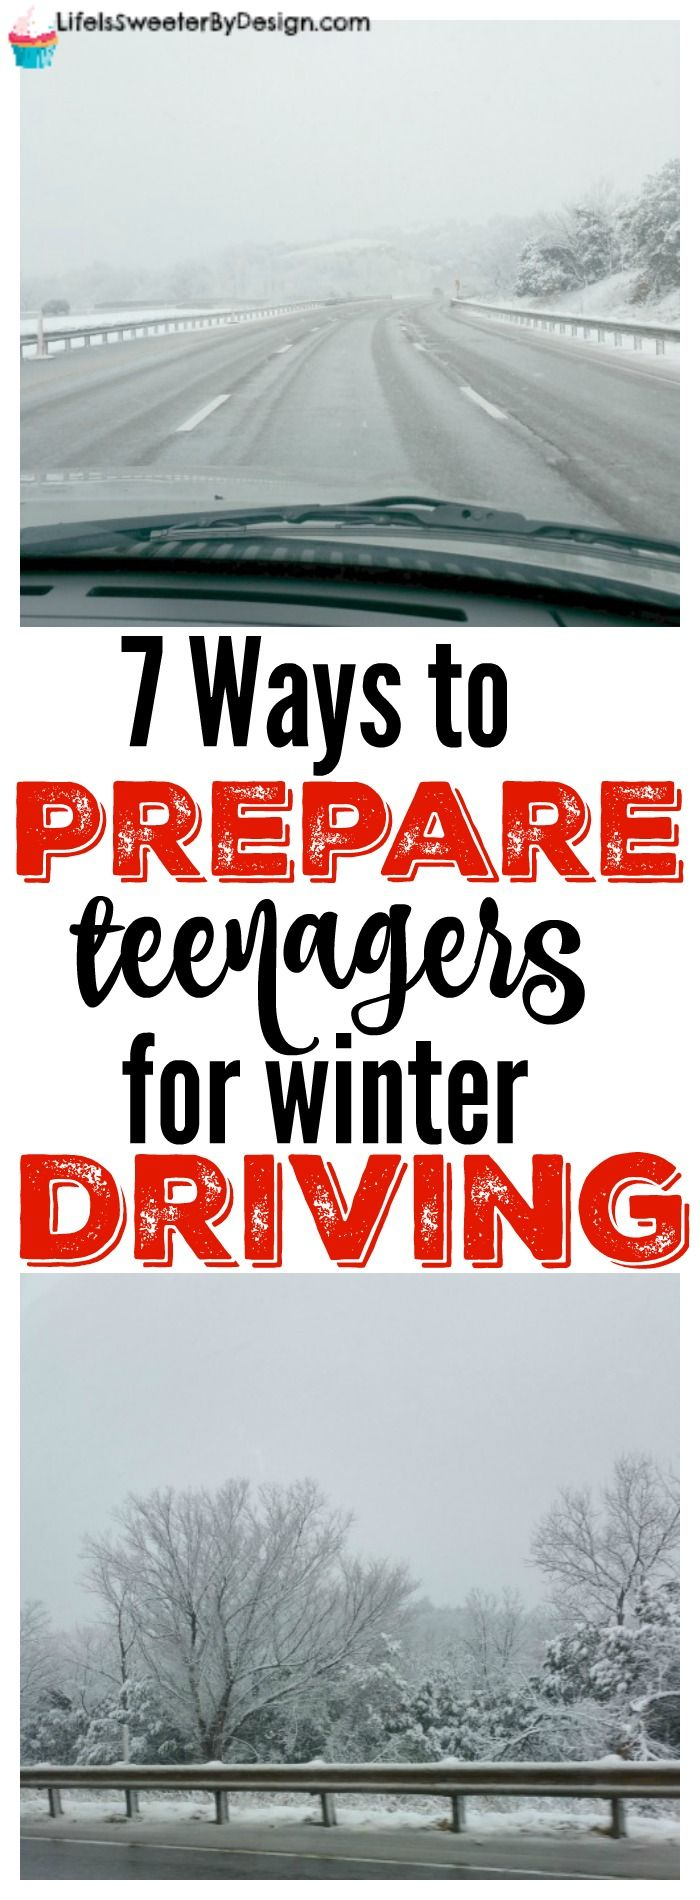 These 7 ways to prepare your teen for winter weather driving are super important. Teaching our teens how to drive in bad weather is vital to their safety! #WeatherProven #ad @Samsclub @goodyear